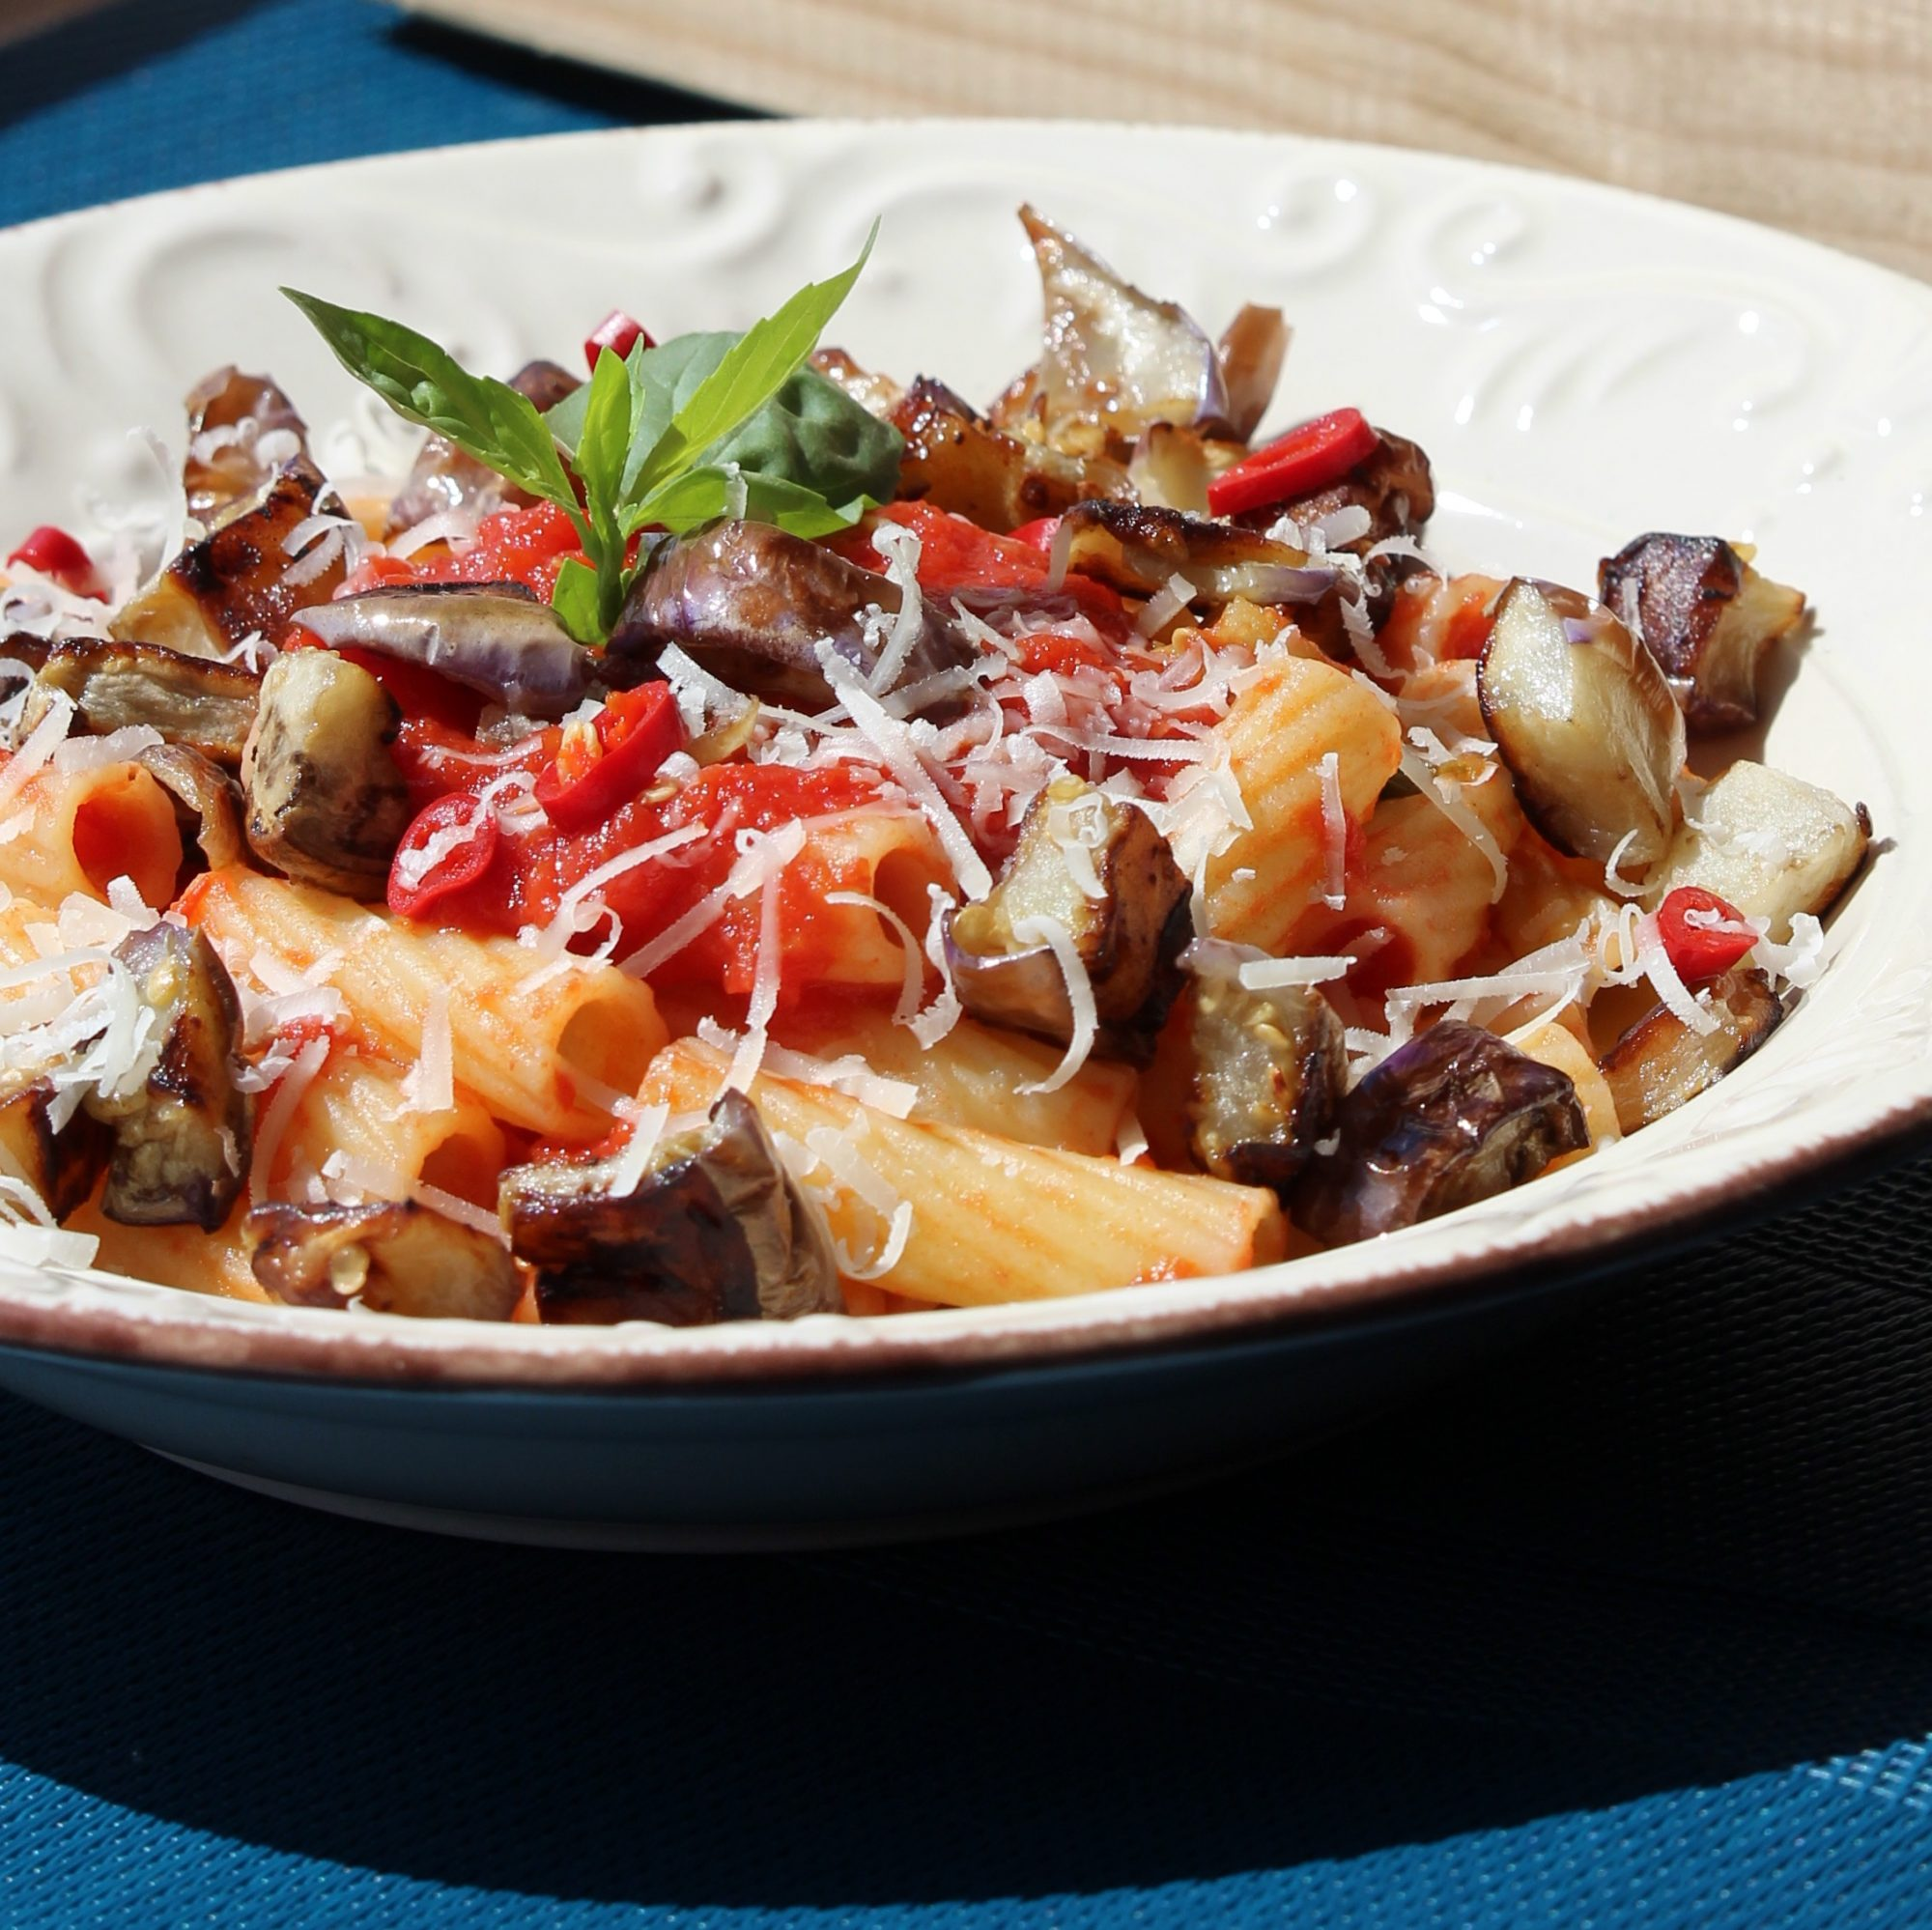 eggplant pasta with red sauce and Parmesan